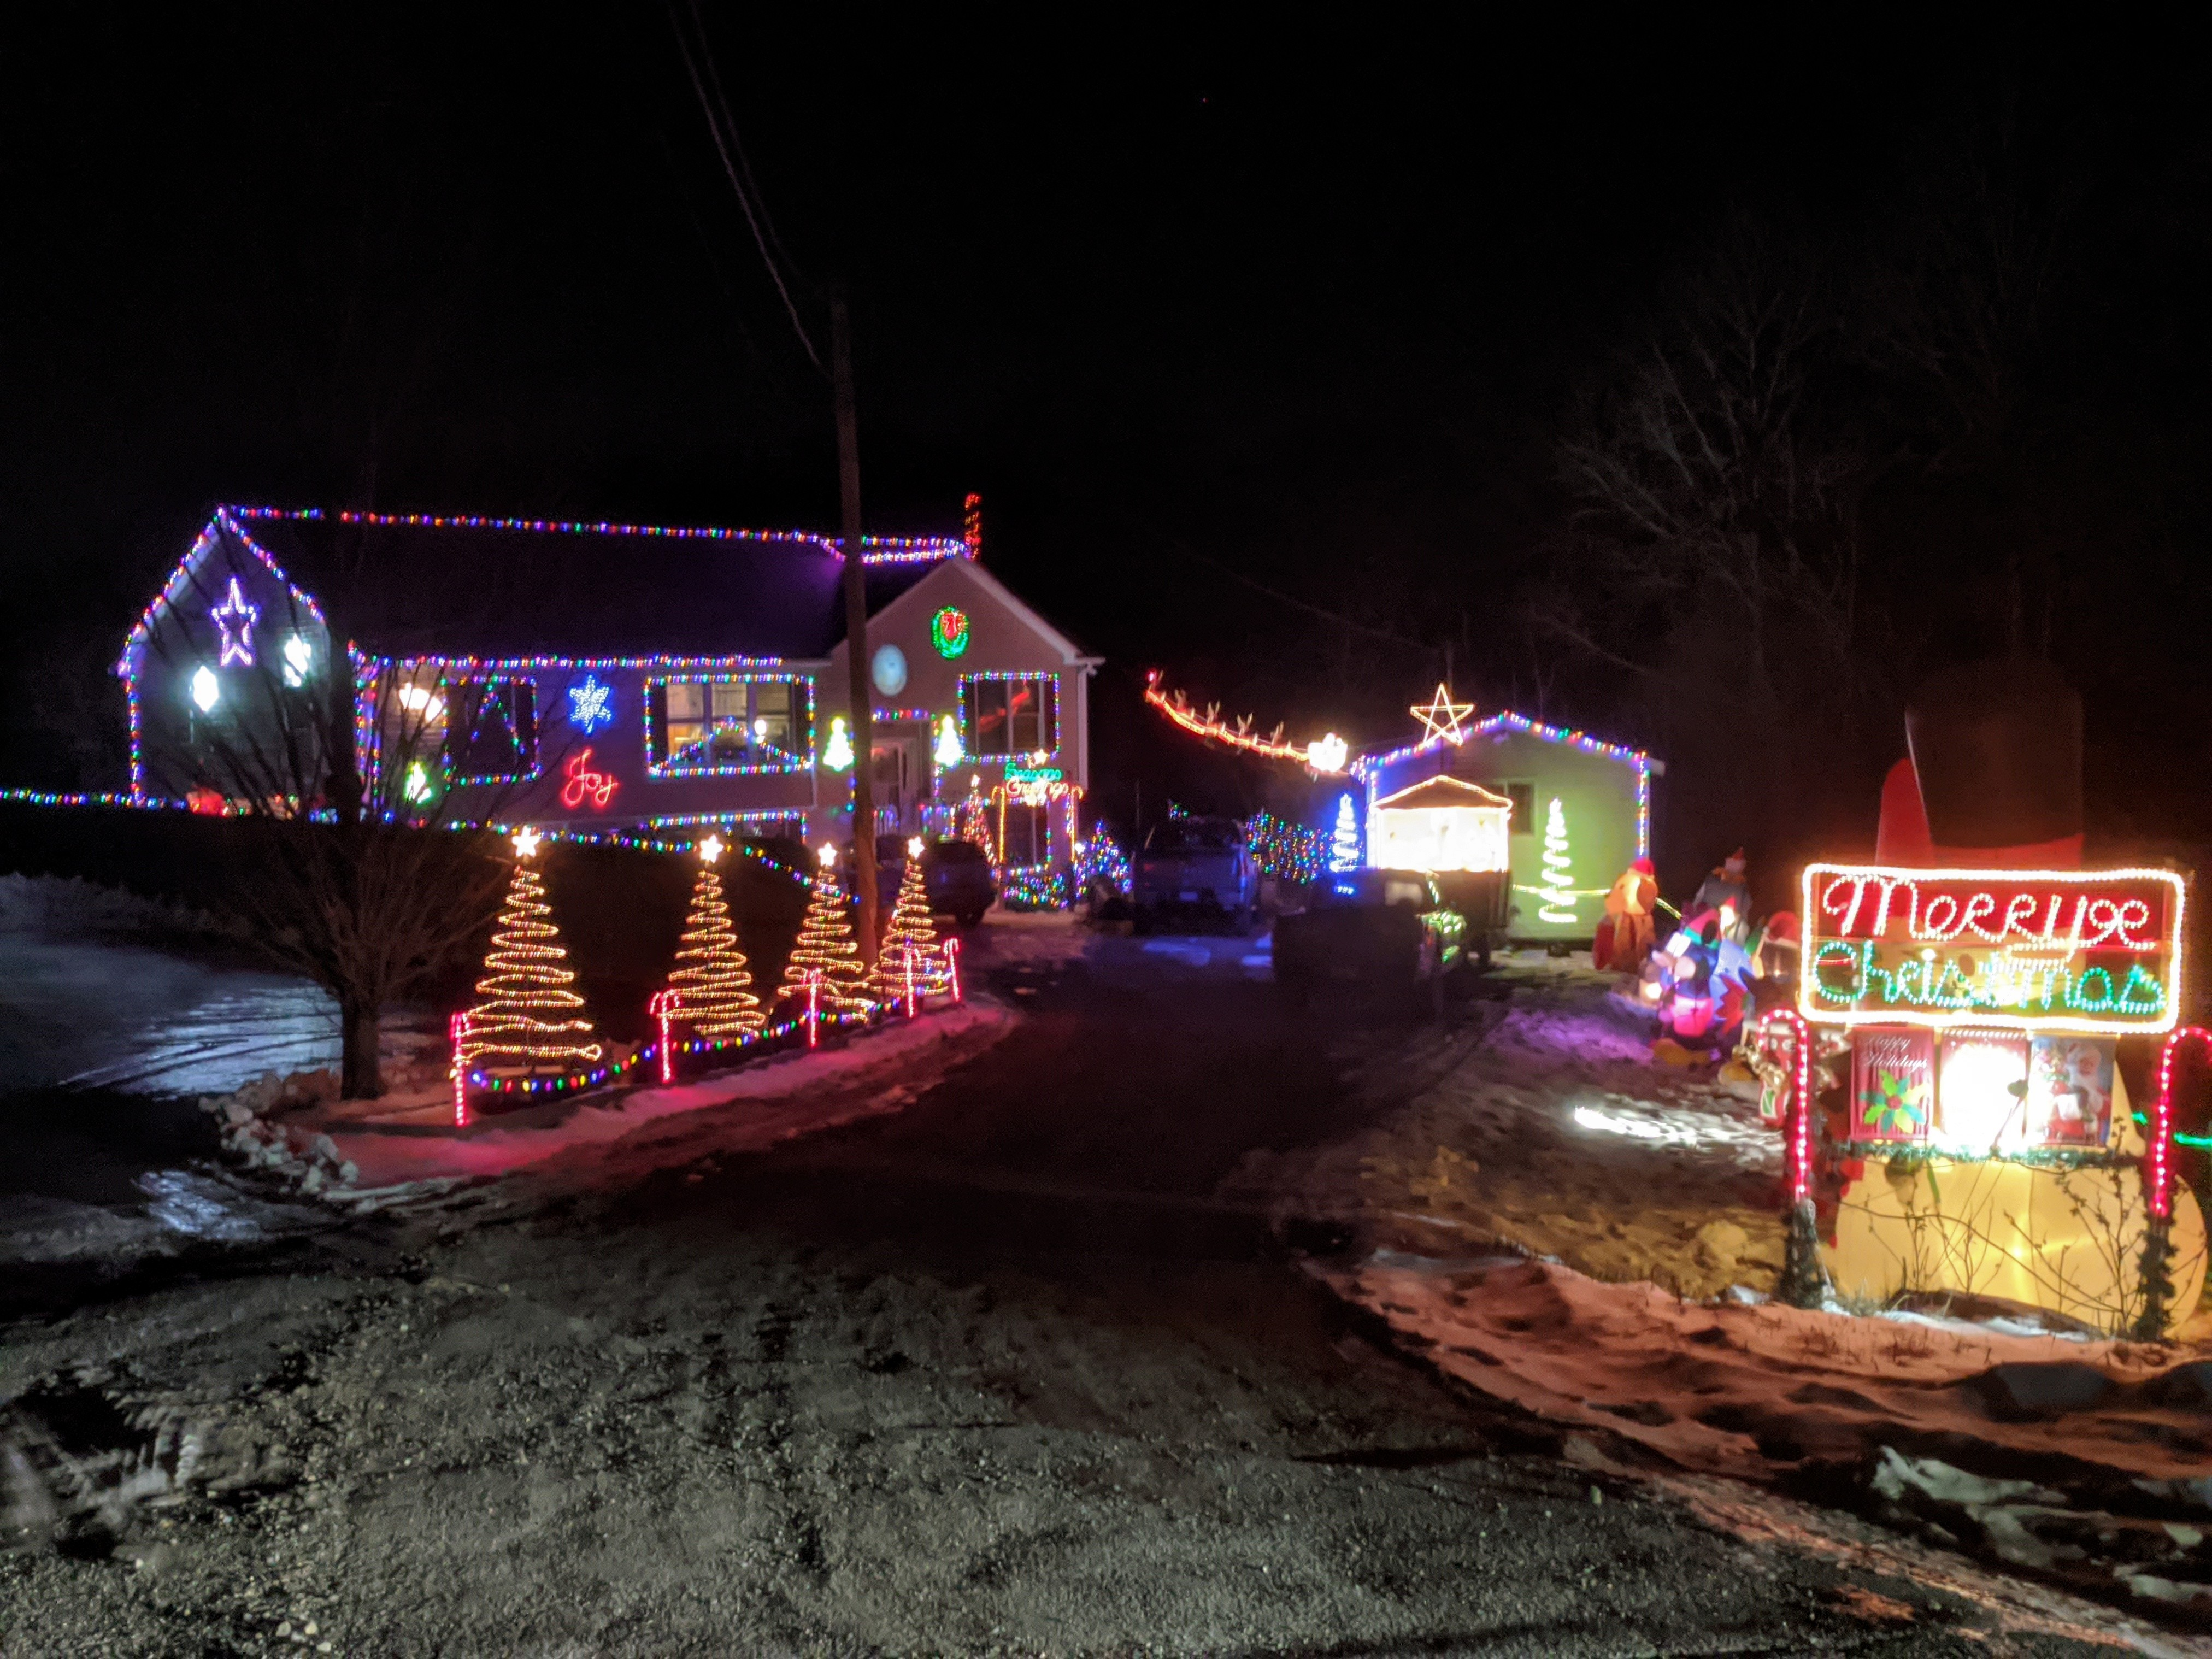 Holiday lights decorated homes_ Christmas 2019 Gloucester Mass_20191219_©c ryan.jpg